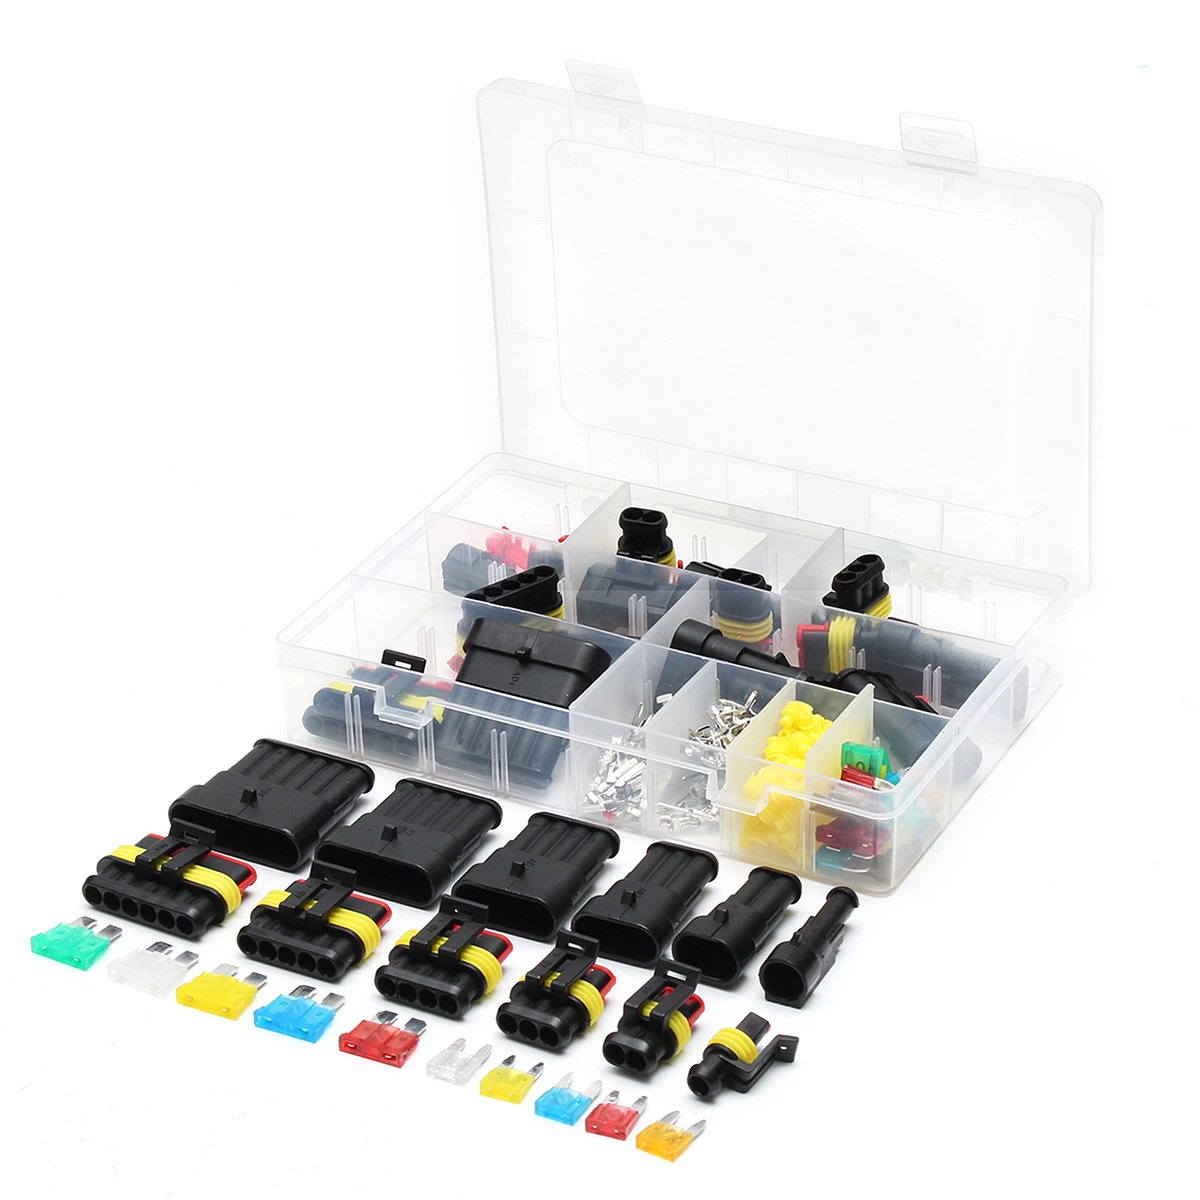 Summer Home 1 2 3 4 5 6 Pin Car Motorcycle Waterproof Best Practices Automotive Wiring Harness Electrical Wire Connector Terminal Assortment Box Kit With Blade Fuses